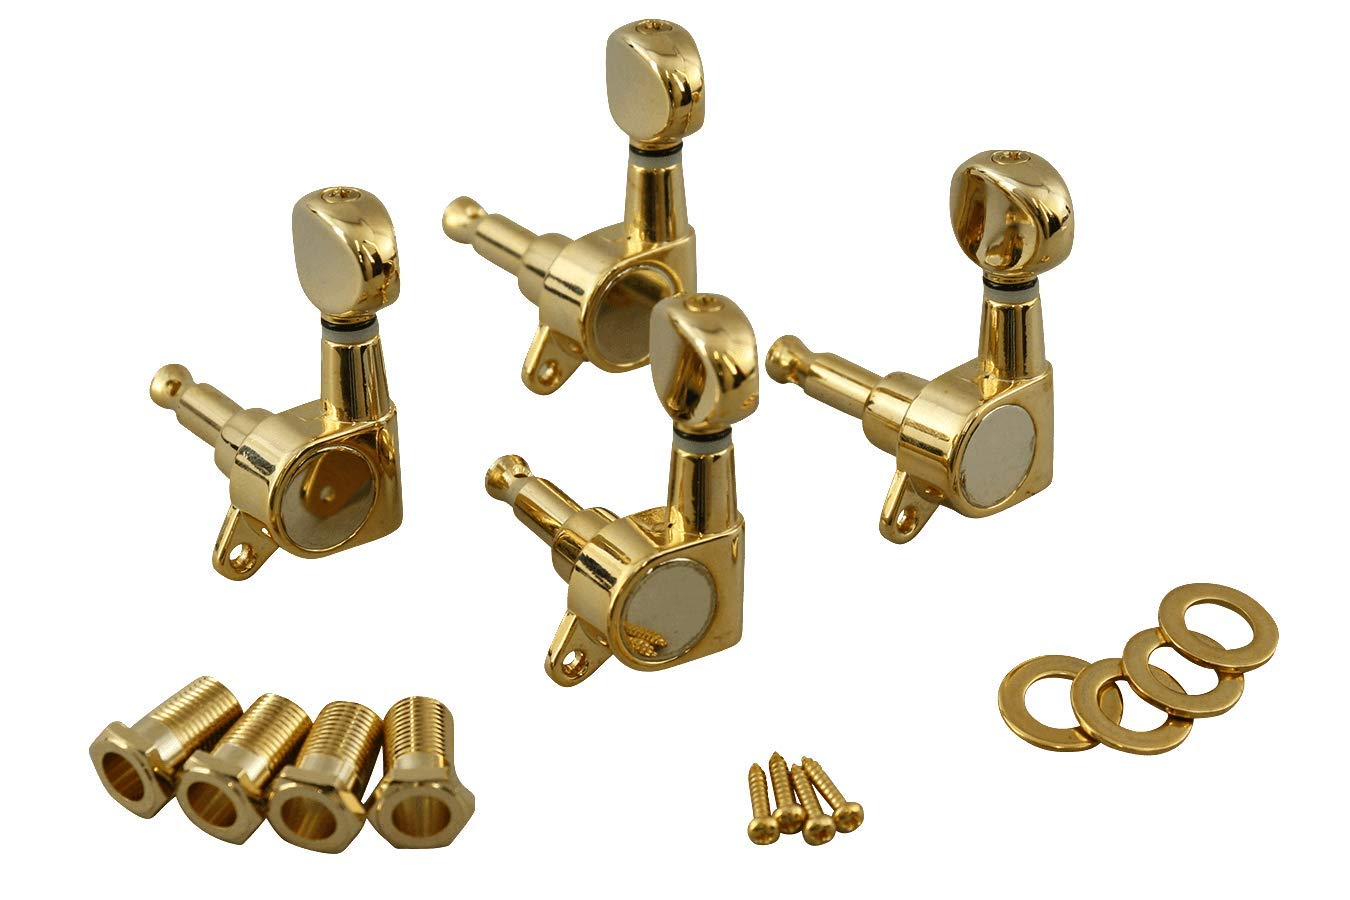 Machine Heads (Lefts Only), Enclosed Gear, Gold Finish, Four Pack